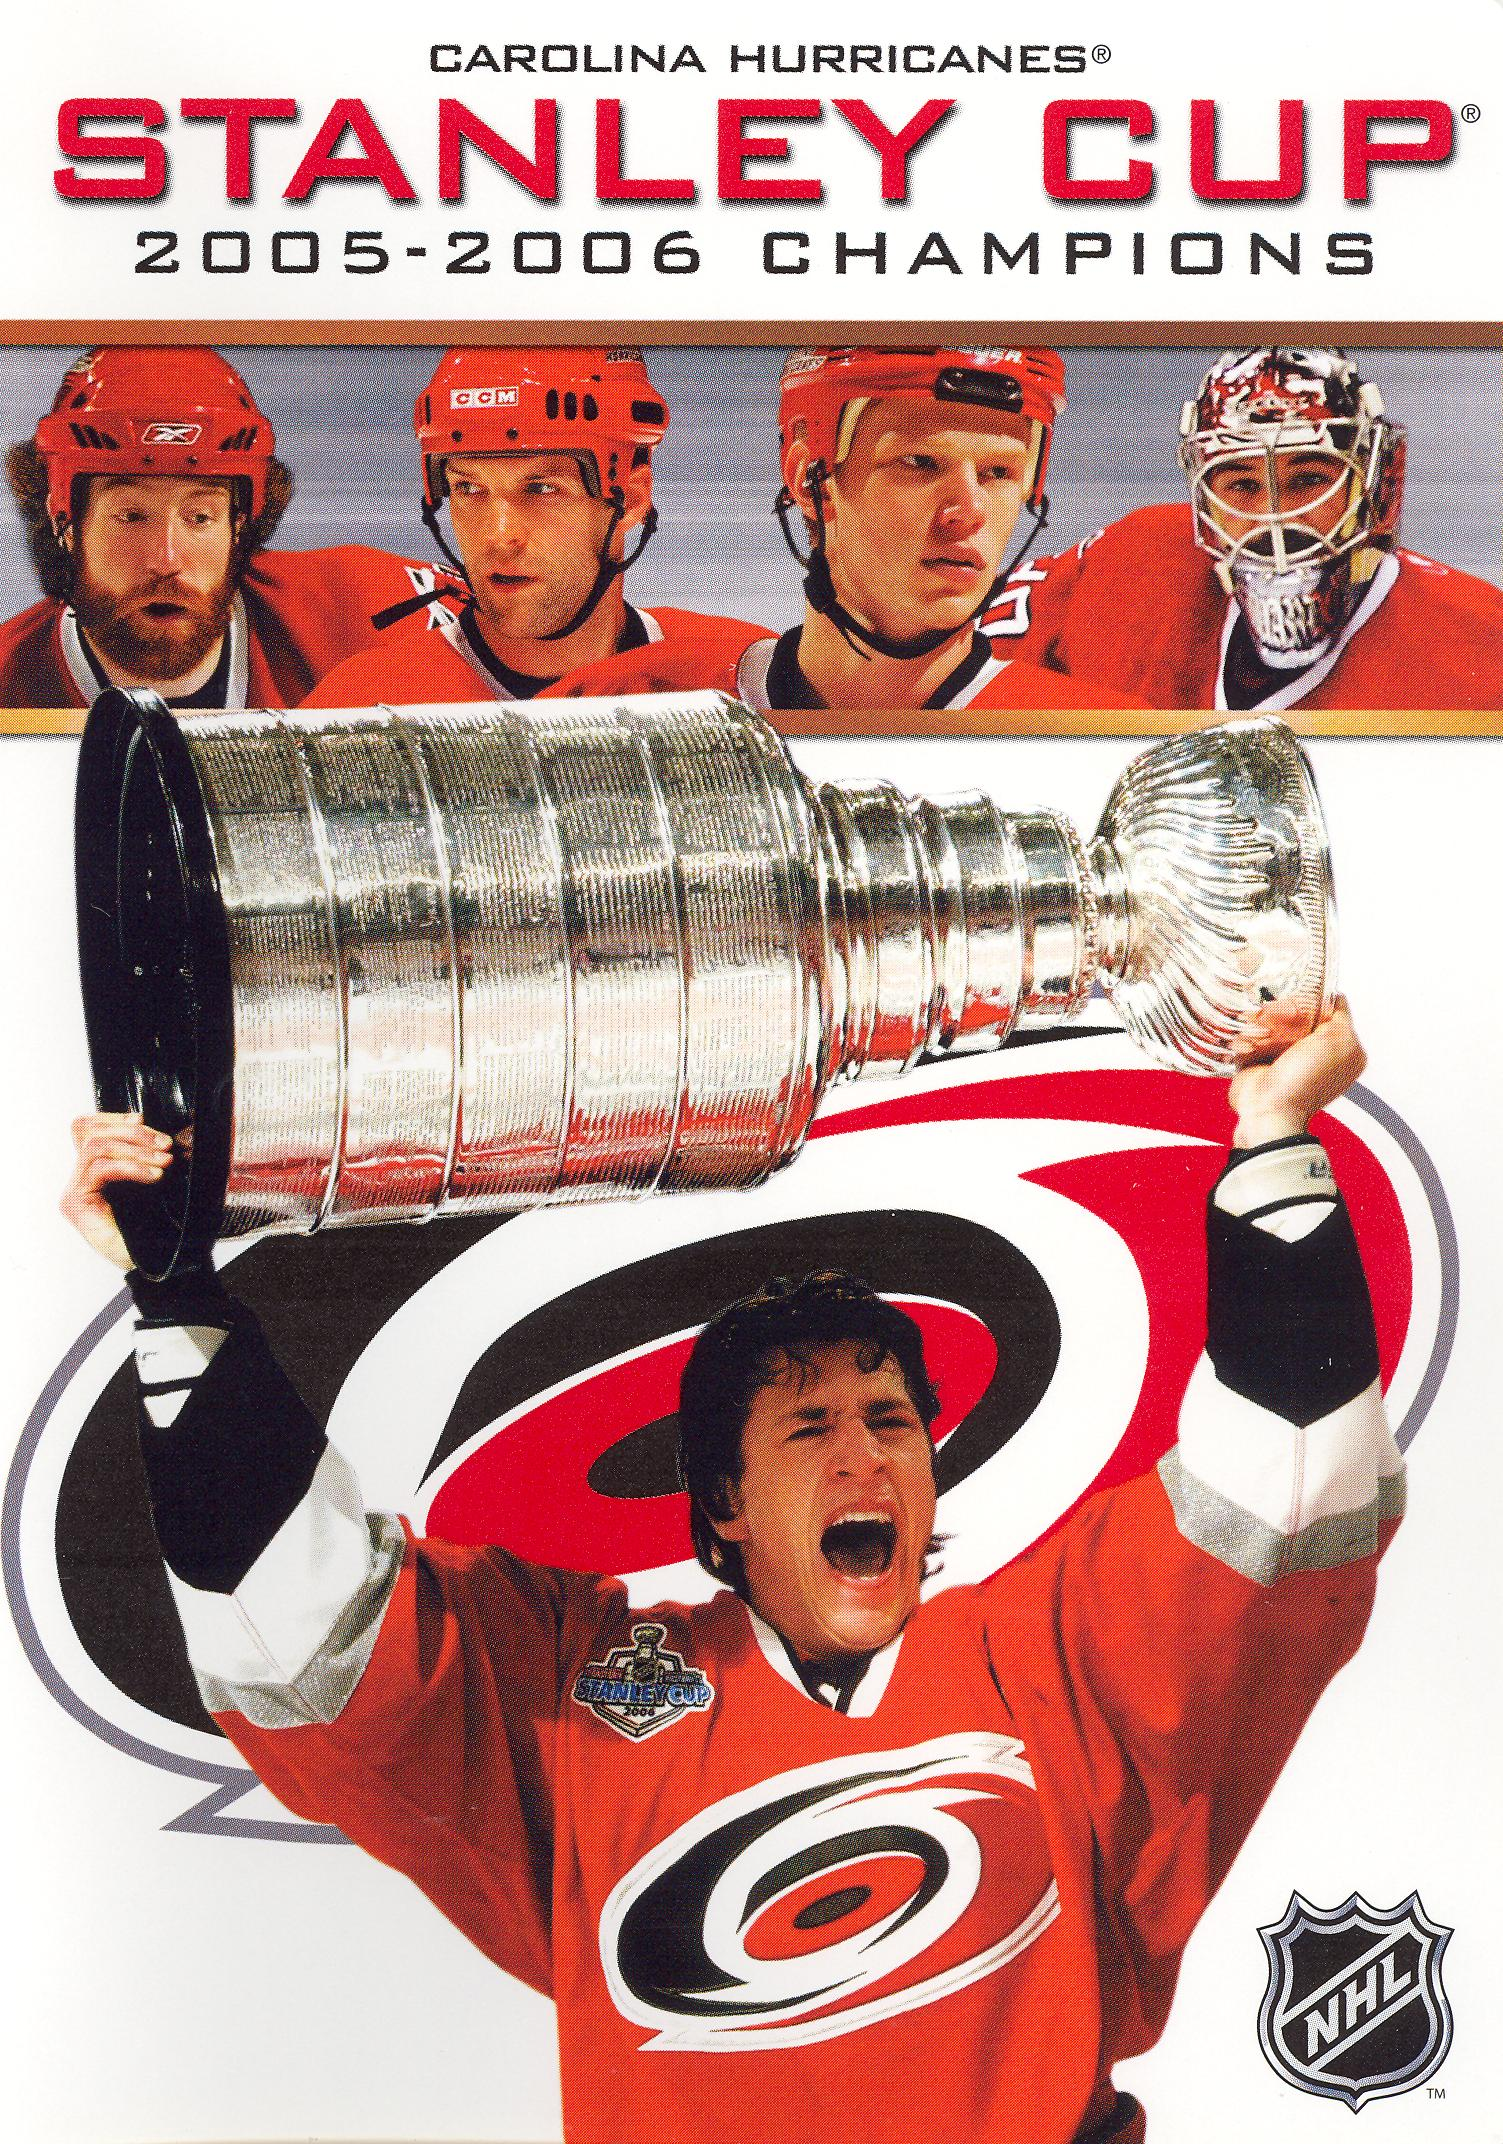 NHL: Stanley Cup 2005-2006 Champions - Carolina Hurricanes